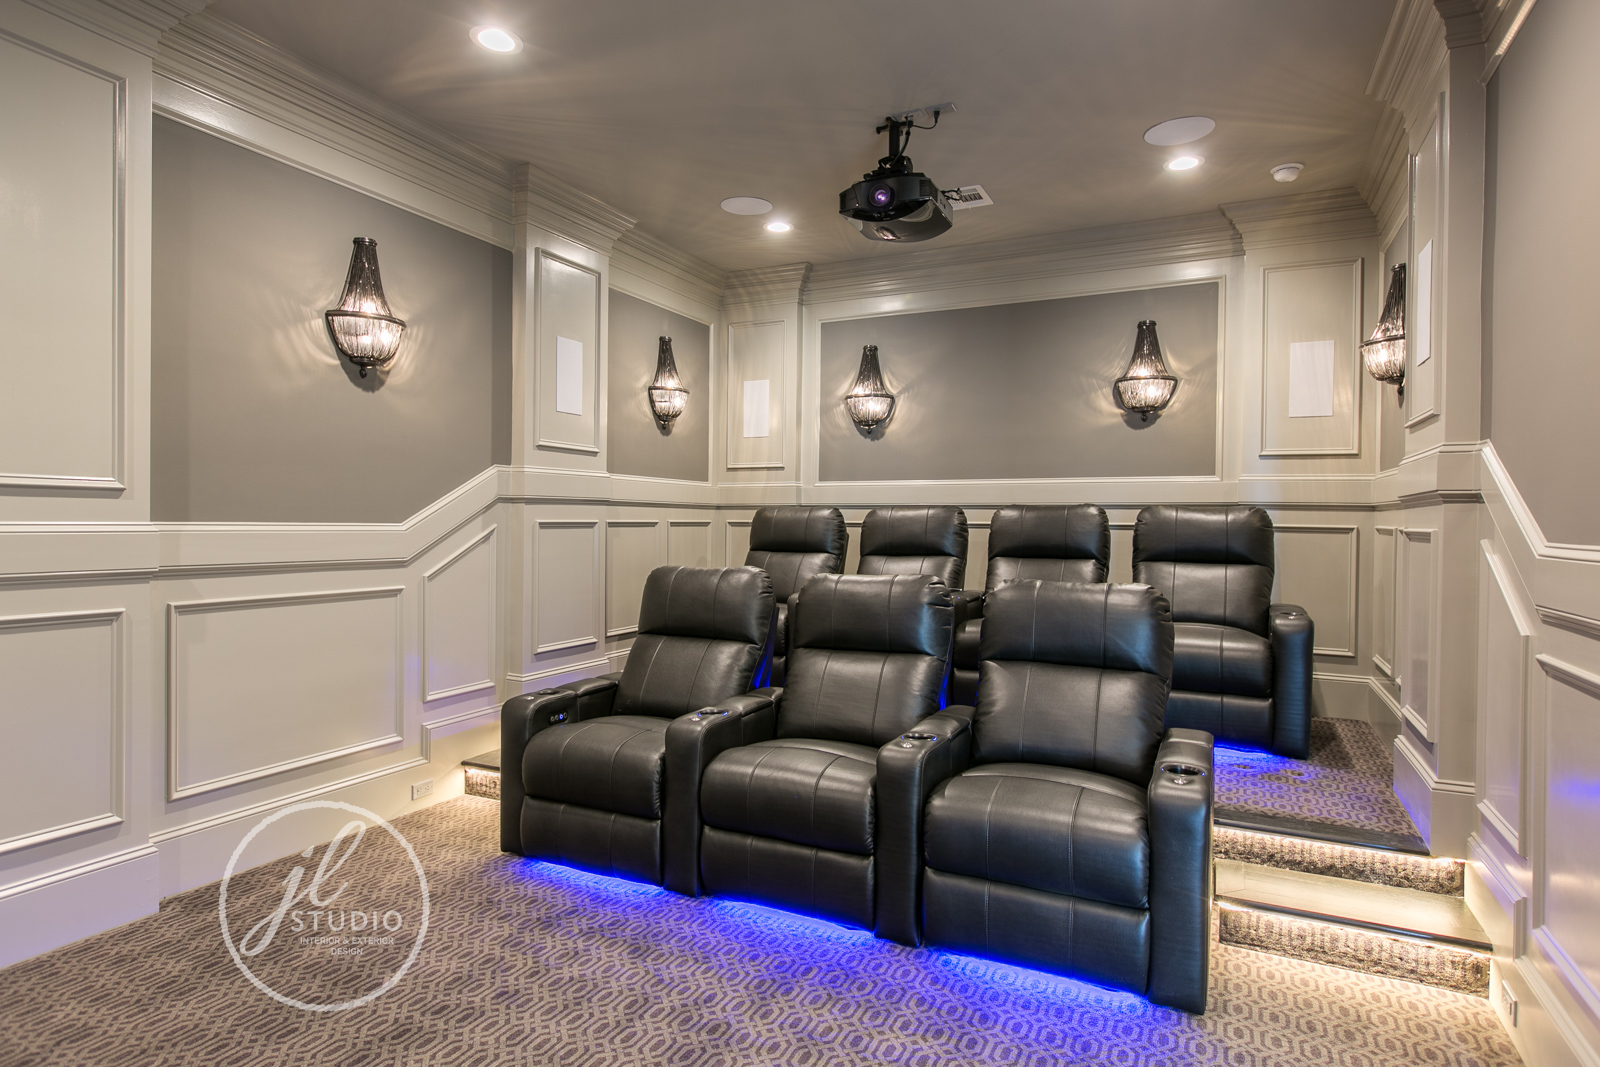 Home theatre designed by JL Studio Designs